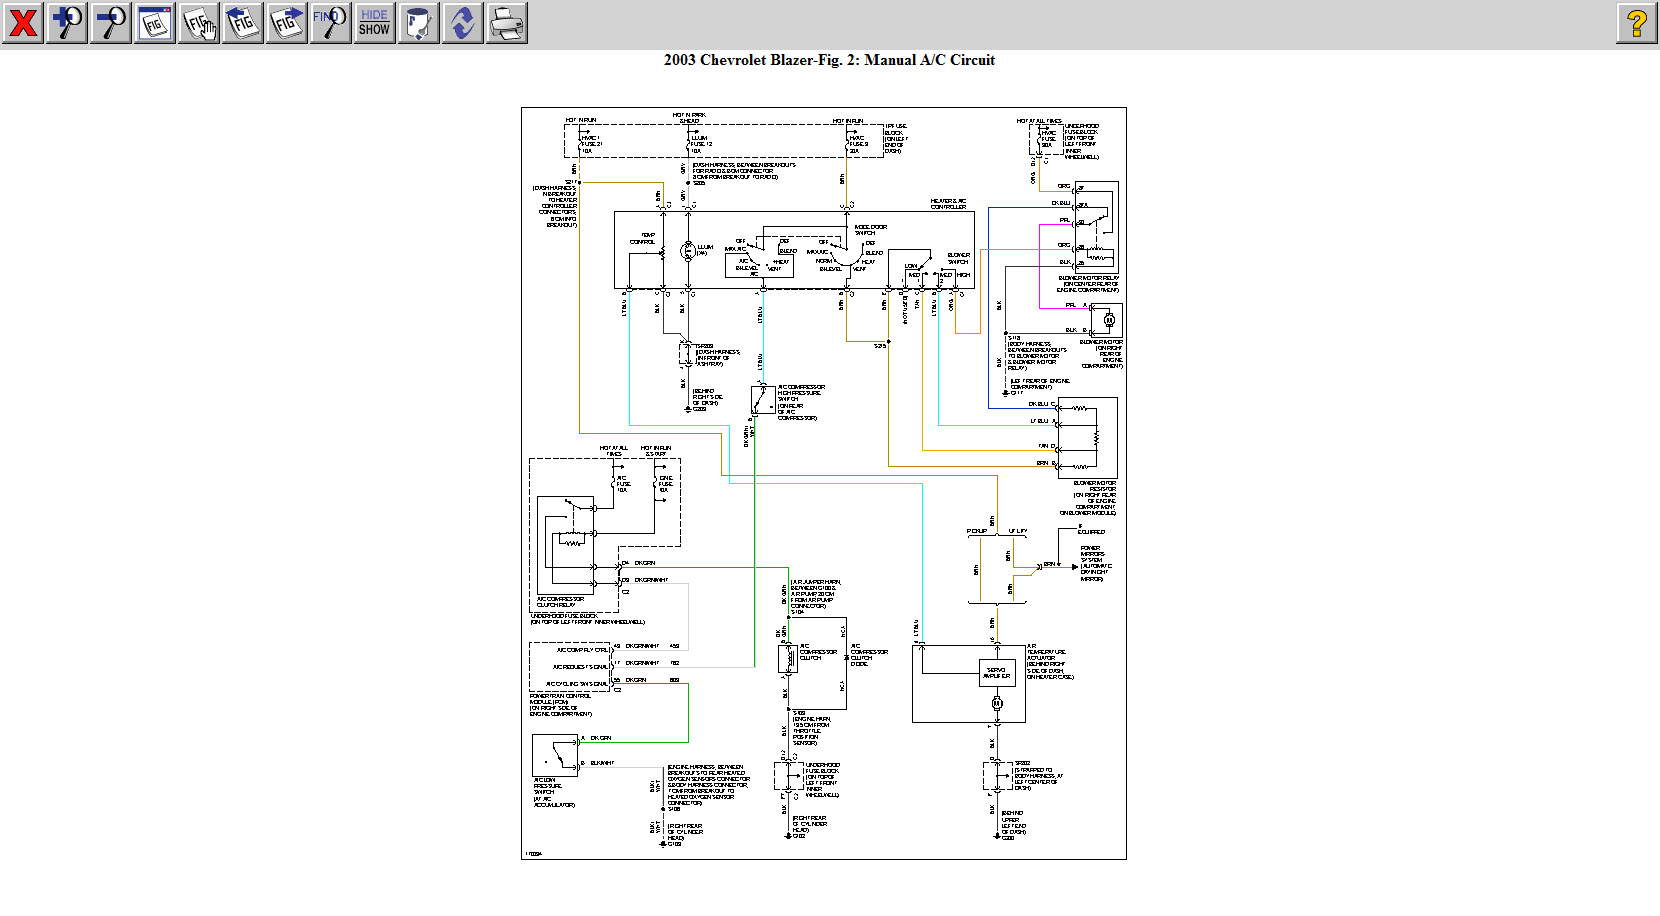 Chevy S10 Air Conditioning System Diagram